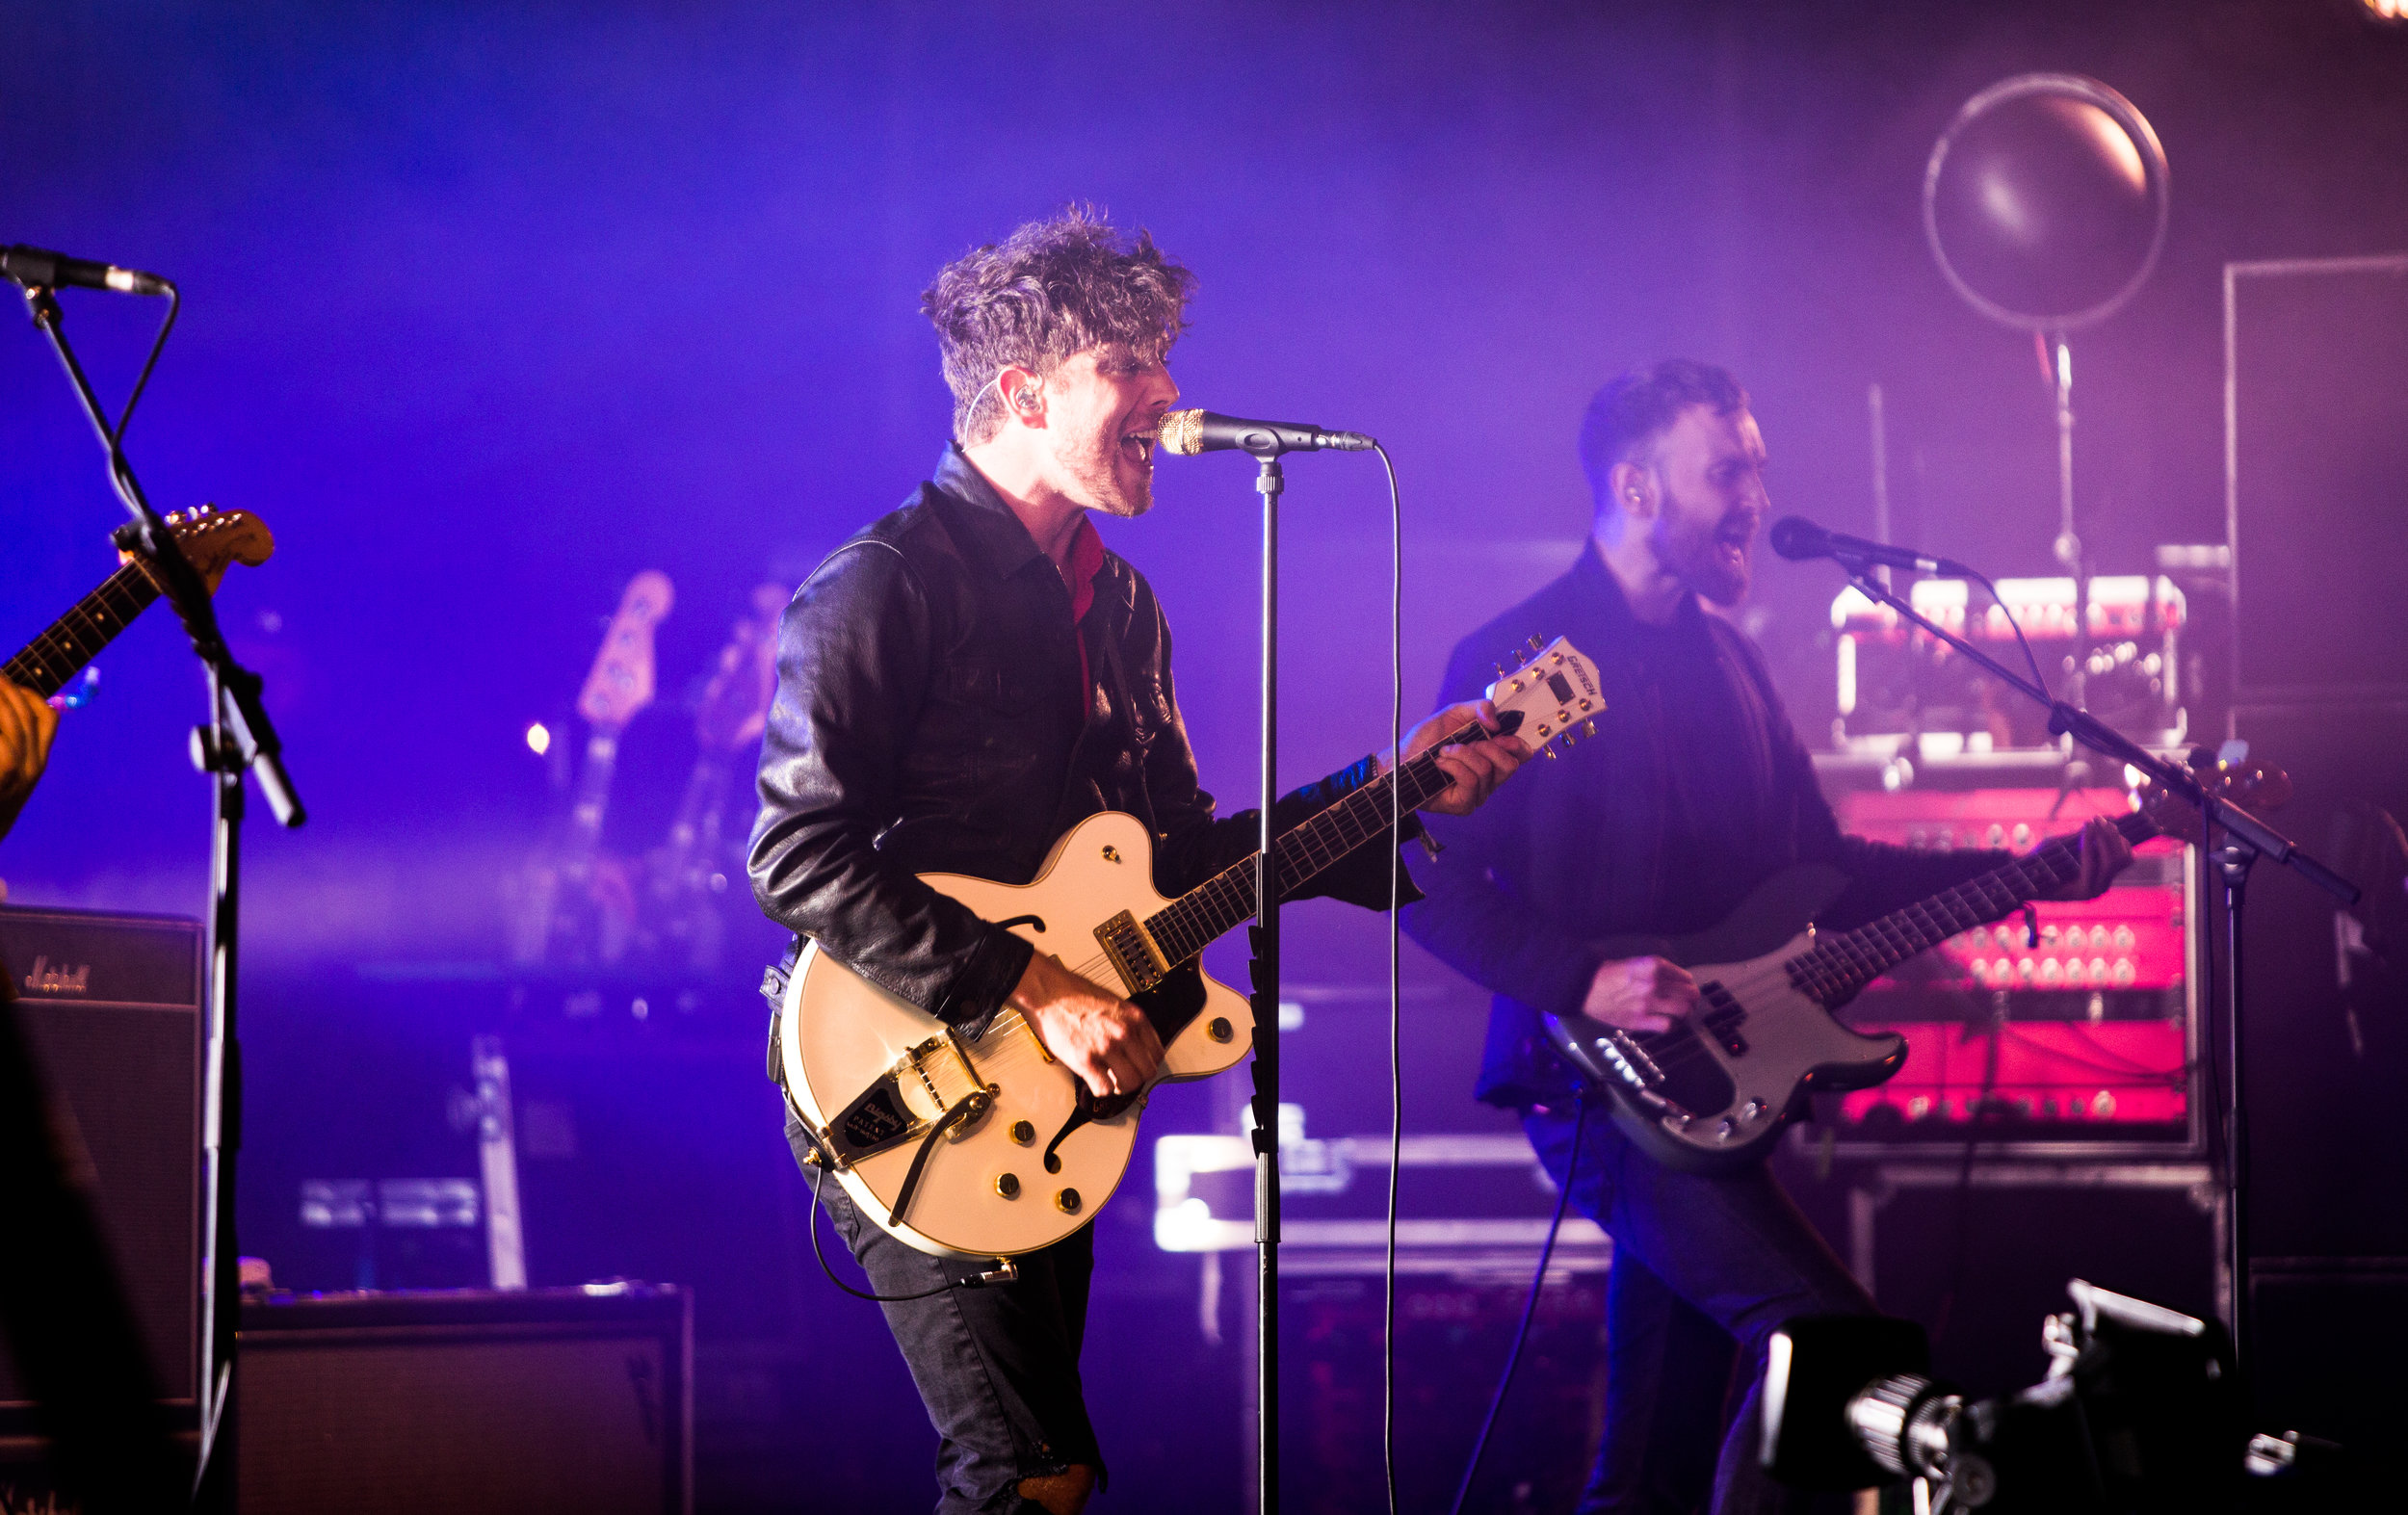 TWIN ATLANTIC PERFORMING AT BELLADRUM TARTAN HEART FESTIVAL 2017 - 04/08/2017  PICTURE BY: FINDLAY MACDONALD PHOTOGRAPHY